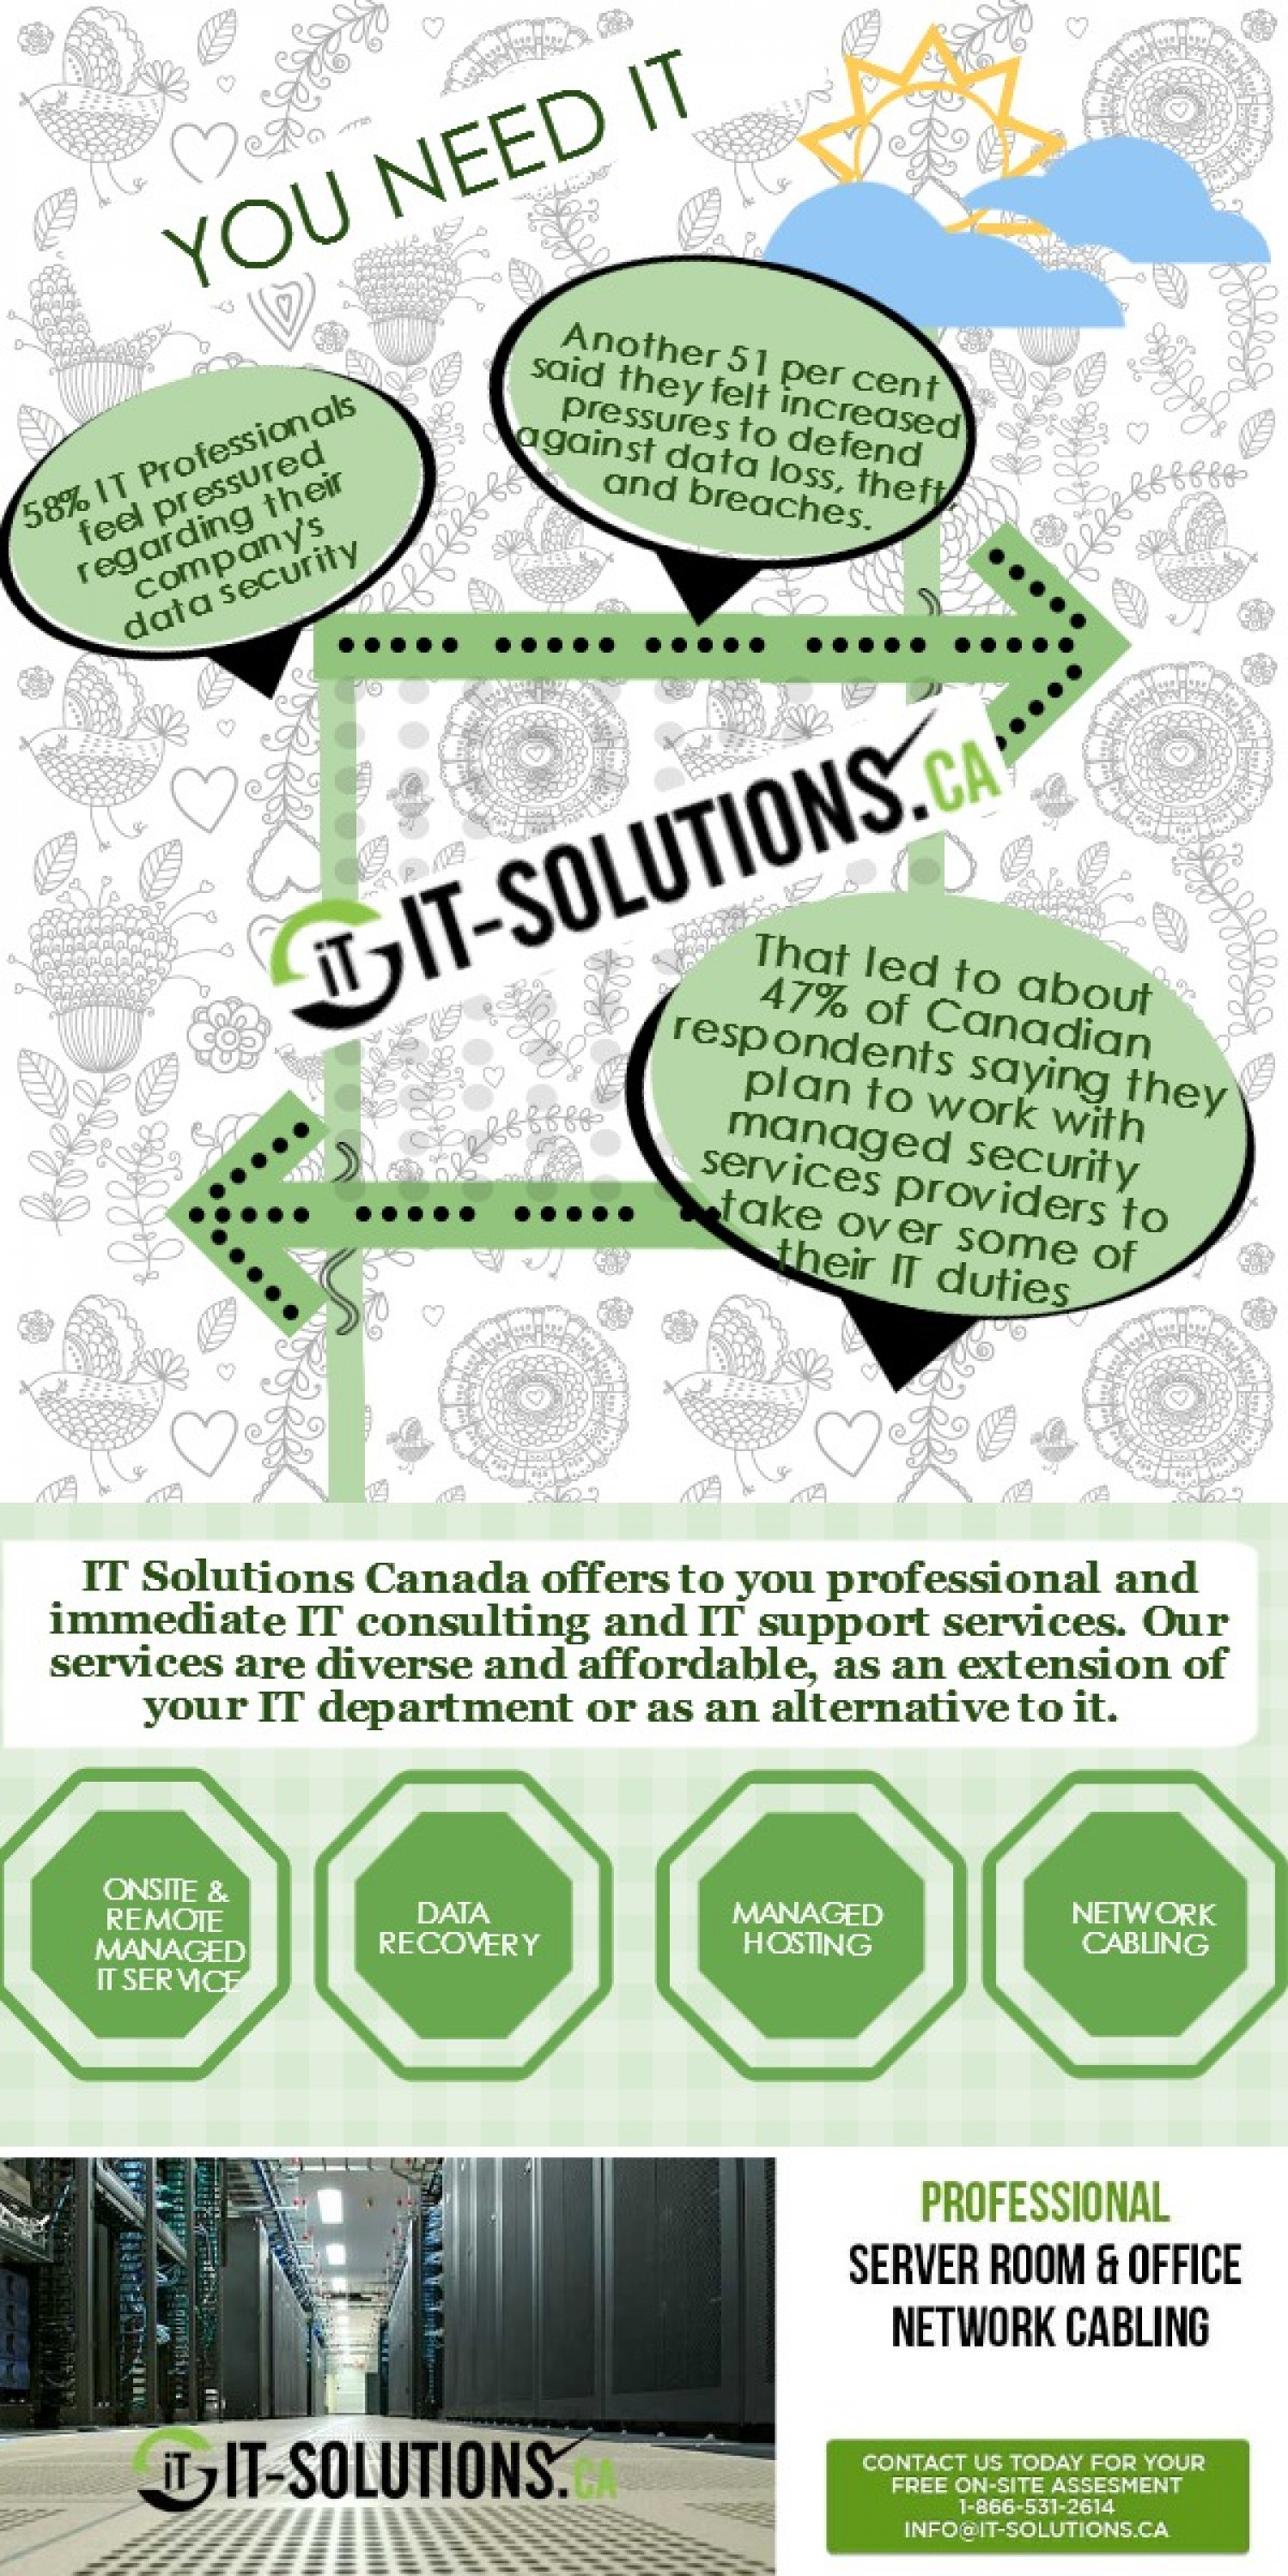 http://www.it-solutions.ca Infographic